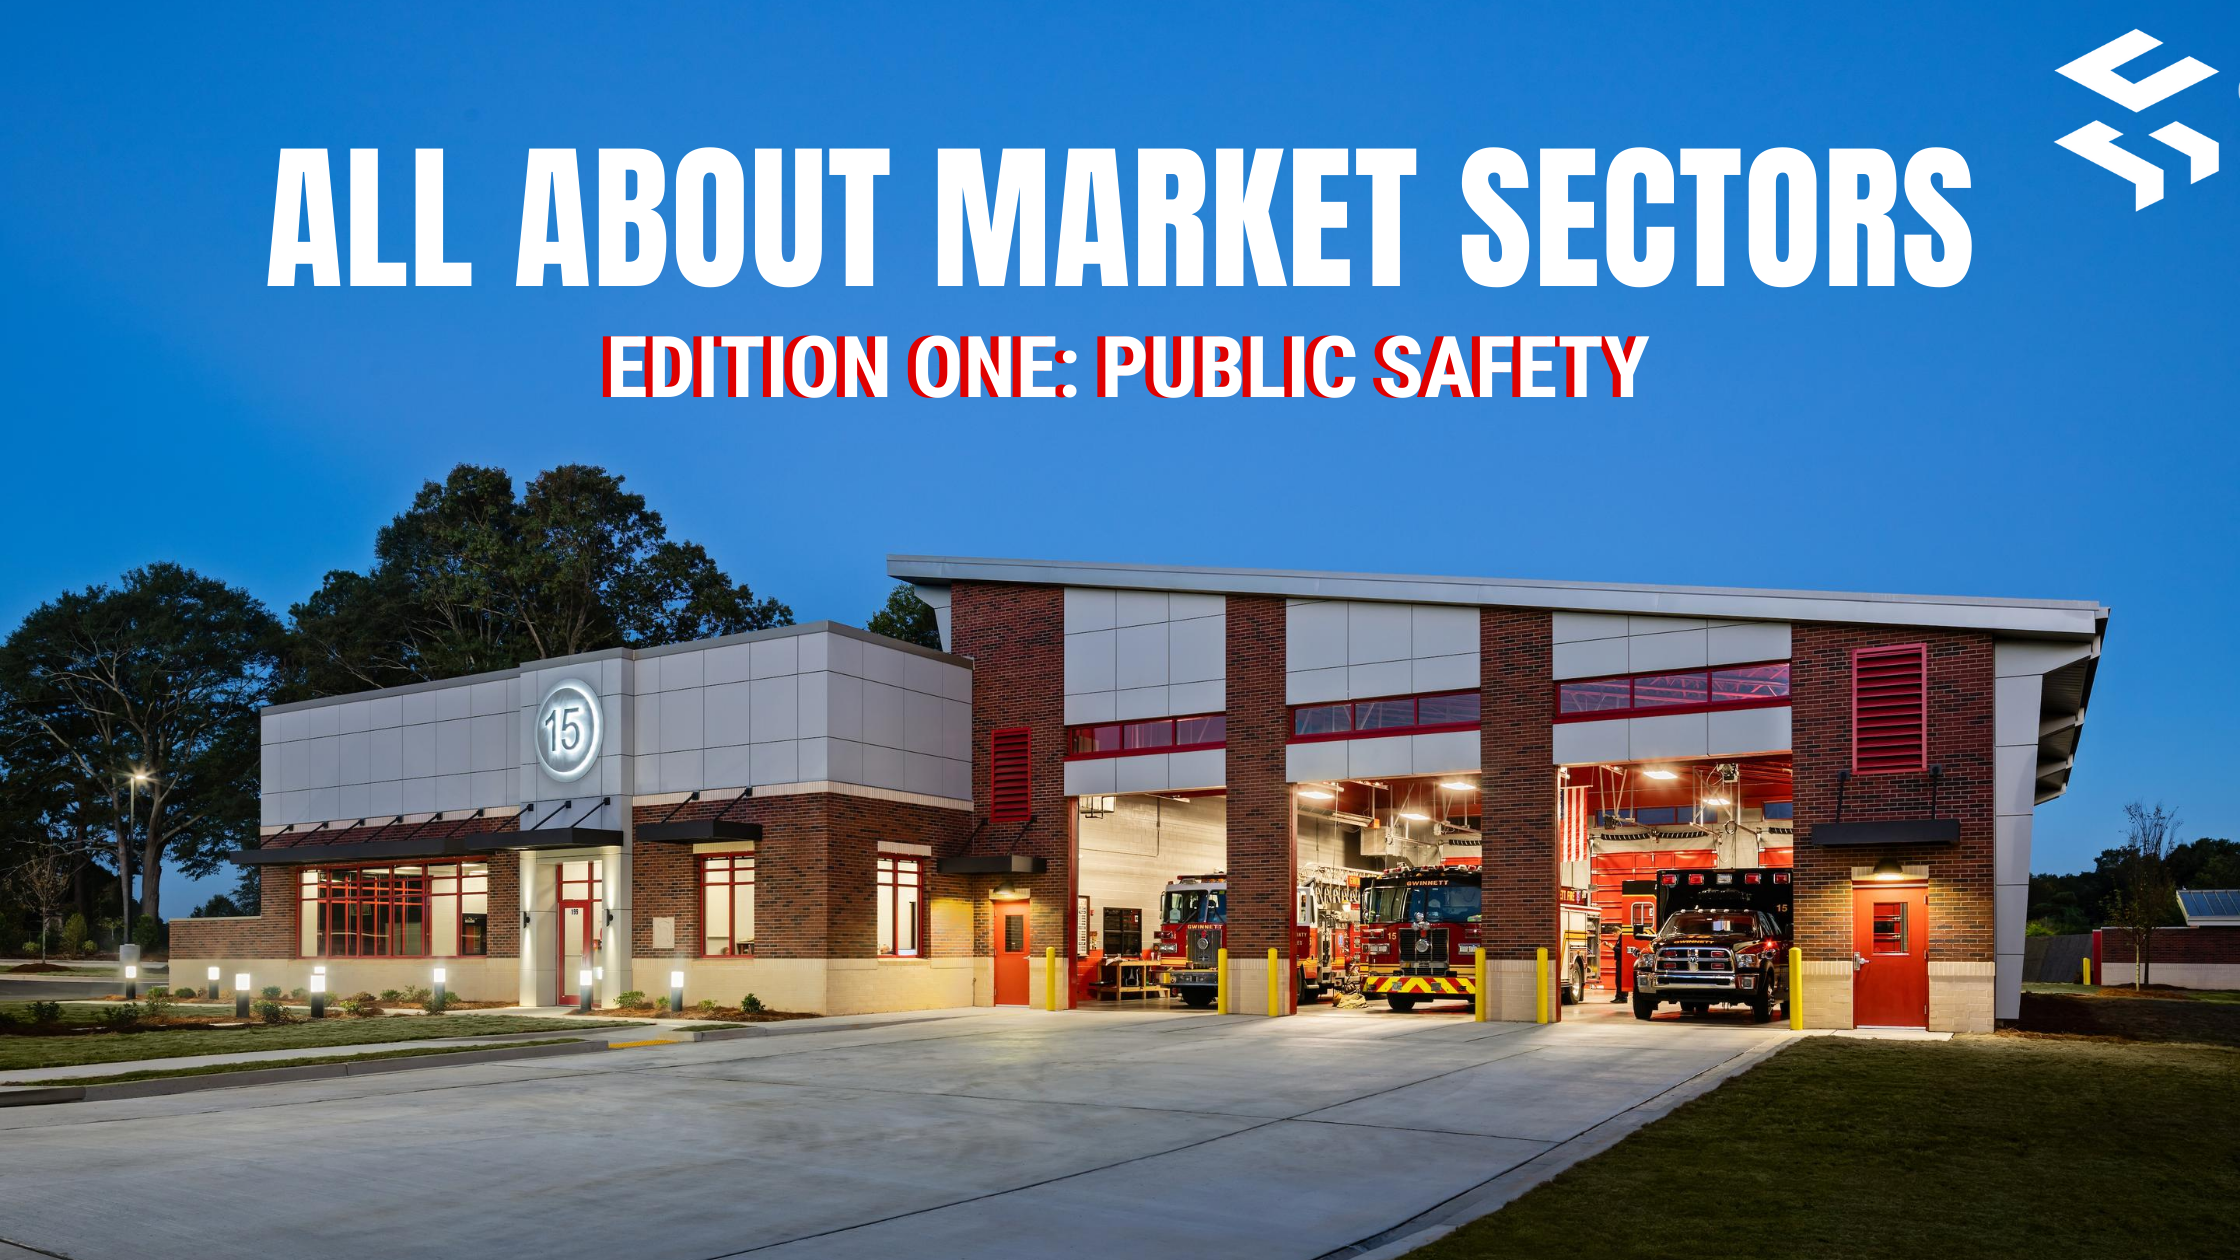 All About Market Sectors- Public Safety